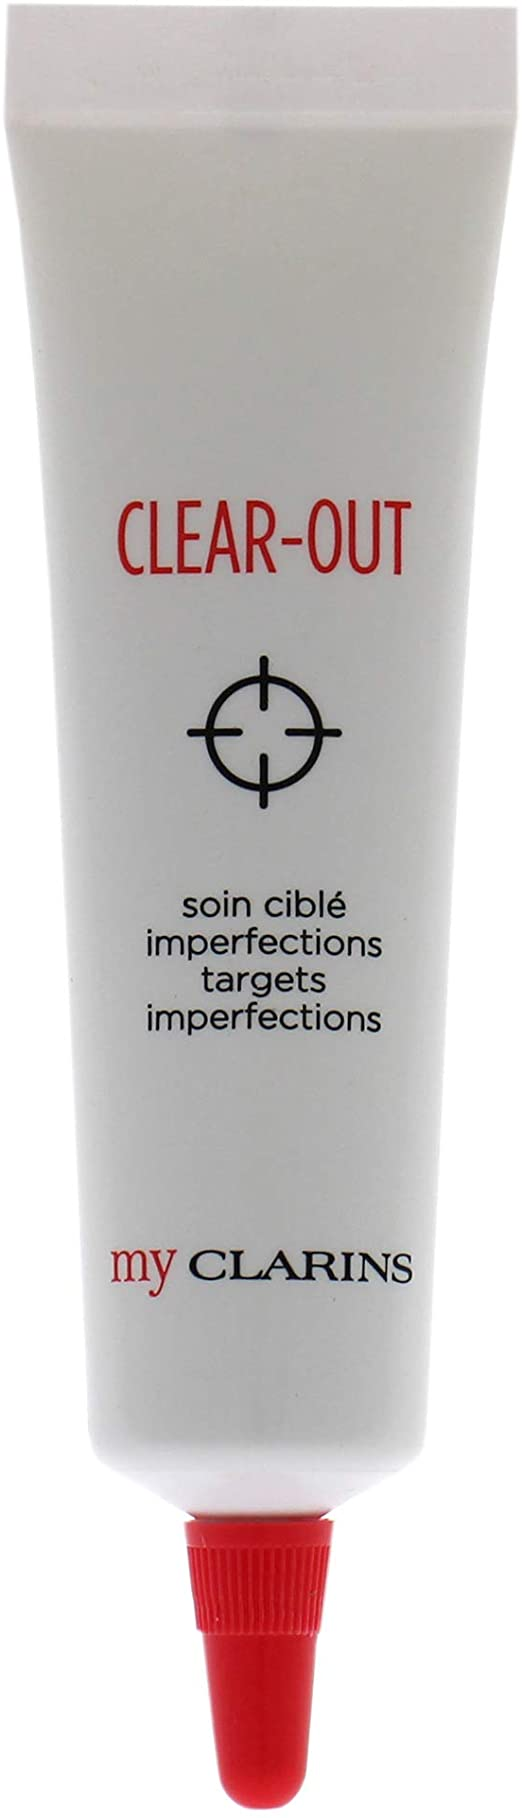 Clarins My Clarins Clear Out Targets Imperfections Face Gel 15ml